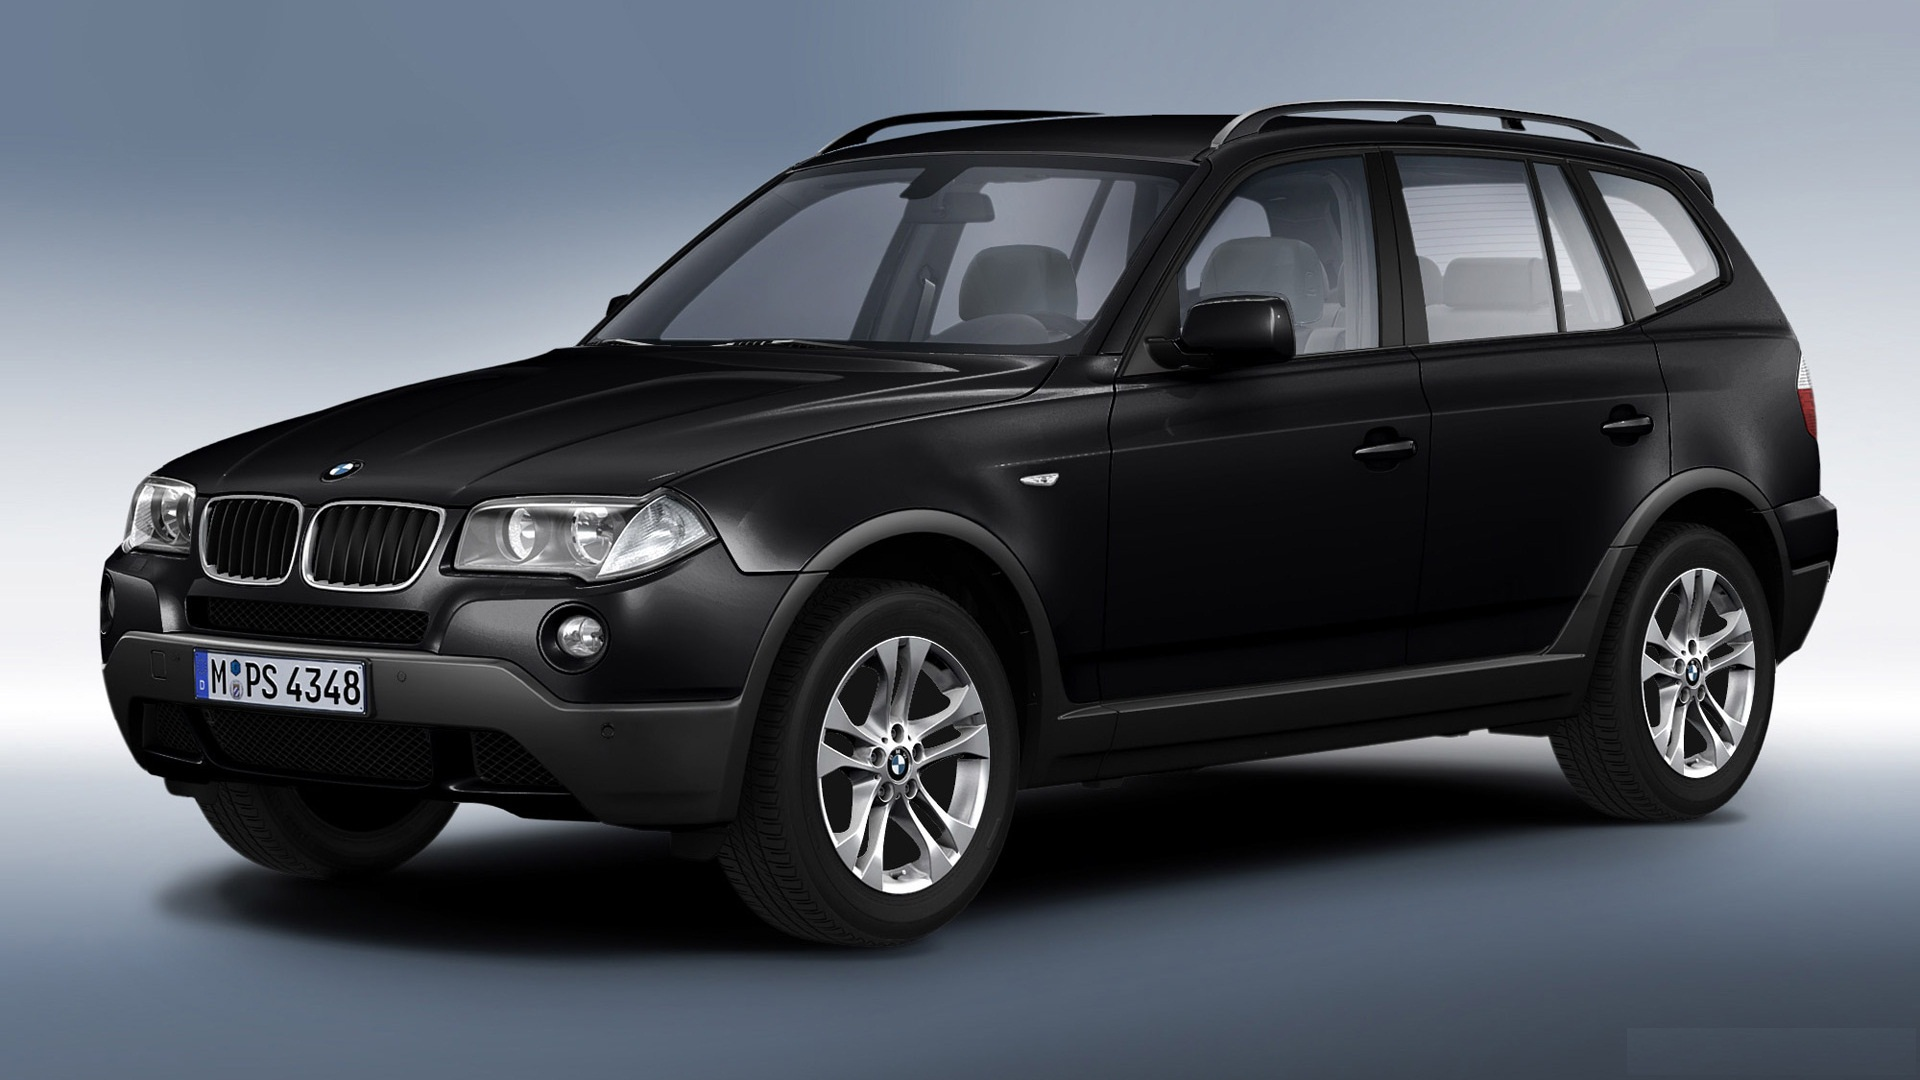 BMW X3 Wallpapers 1080p